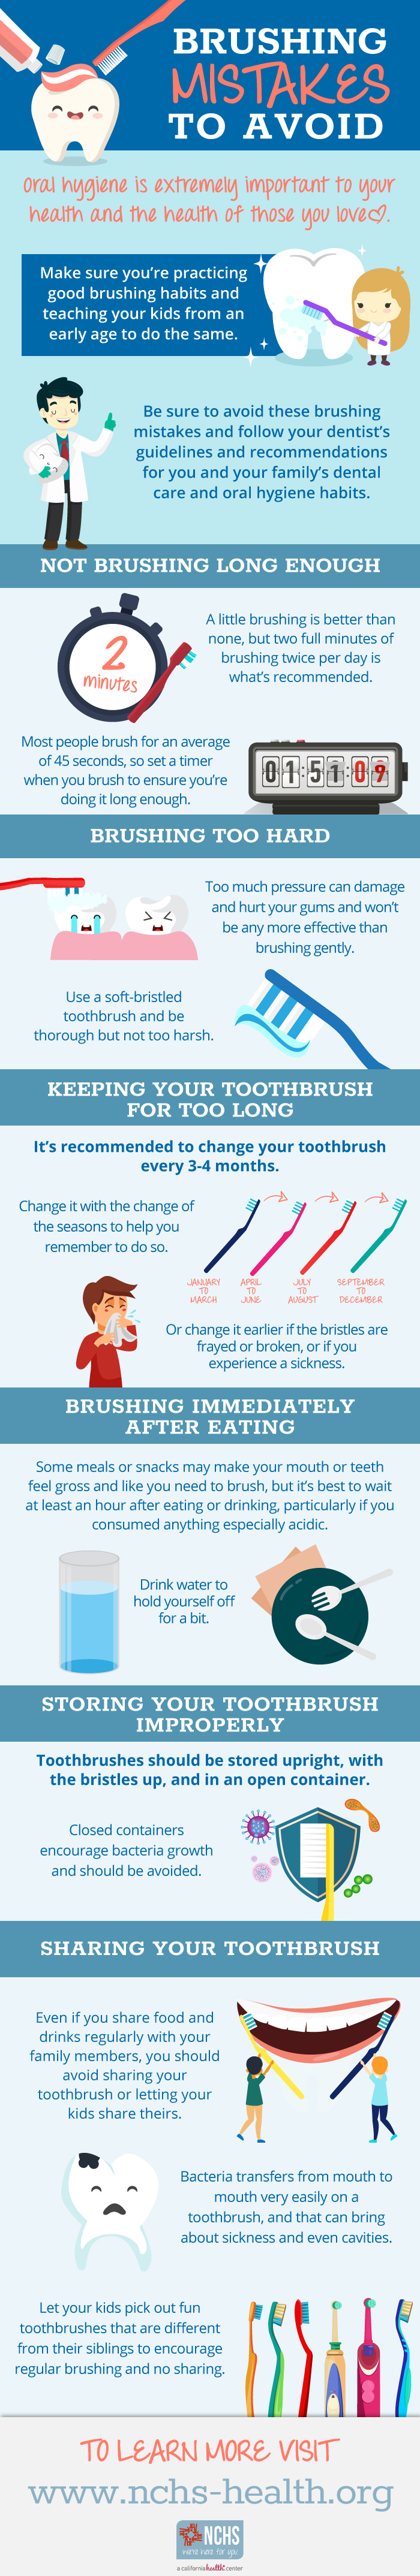 Oral Hygiene: How To Brush Your Teeth Correctly - Infographic